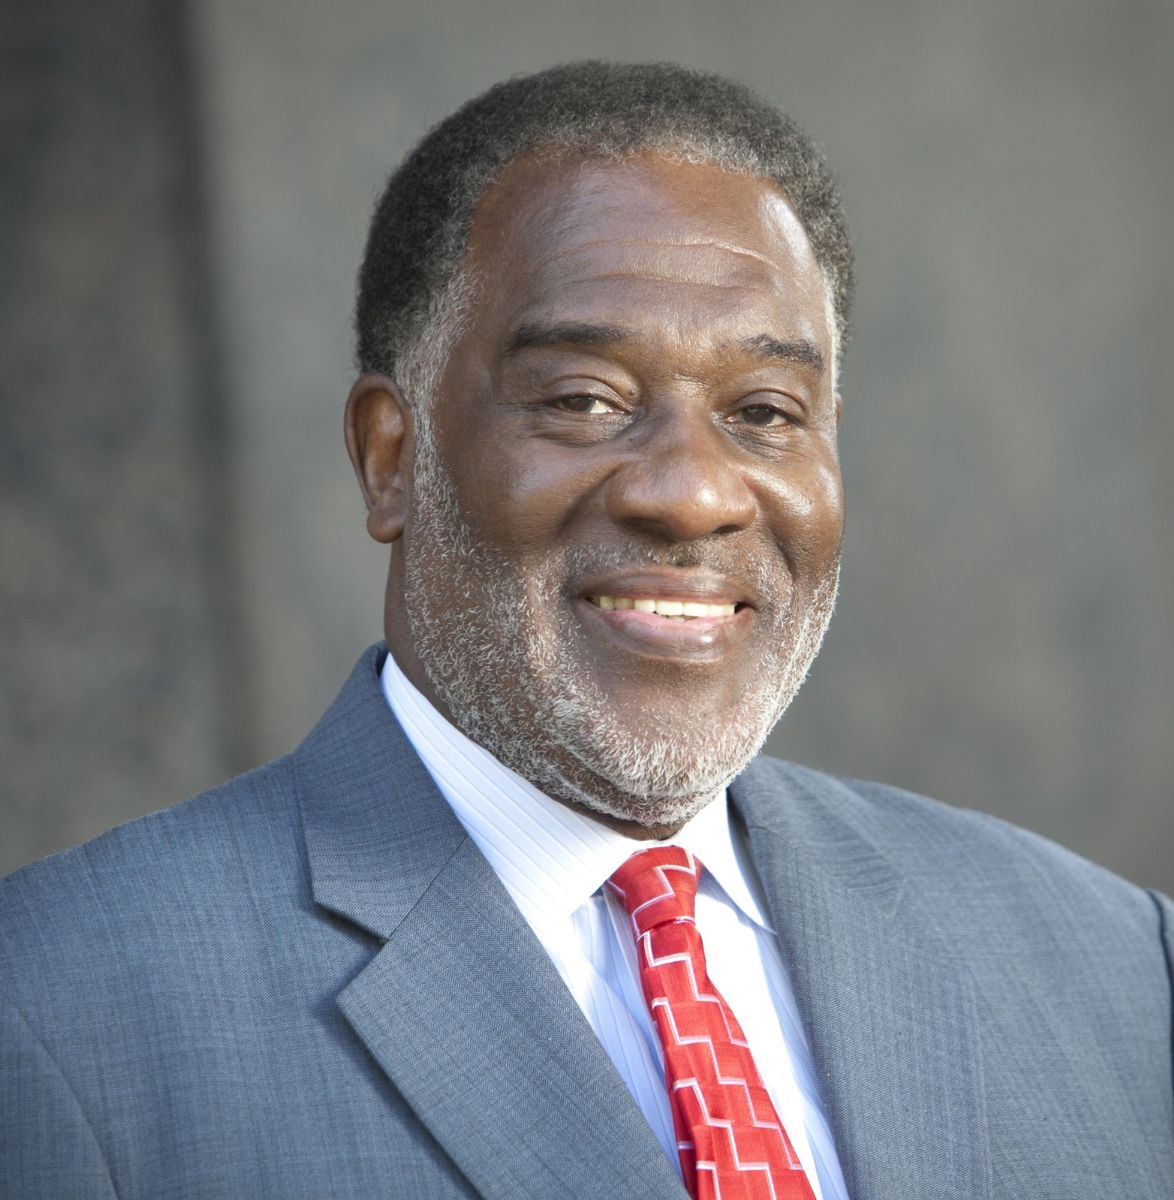 The Honorable Charles L. Becton